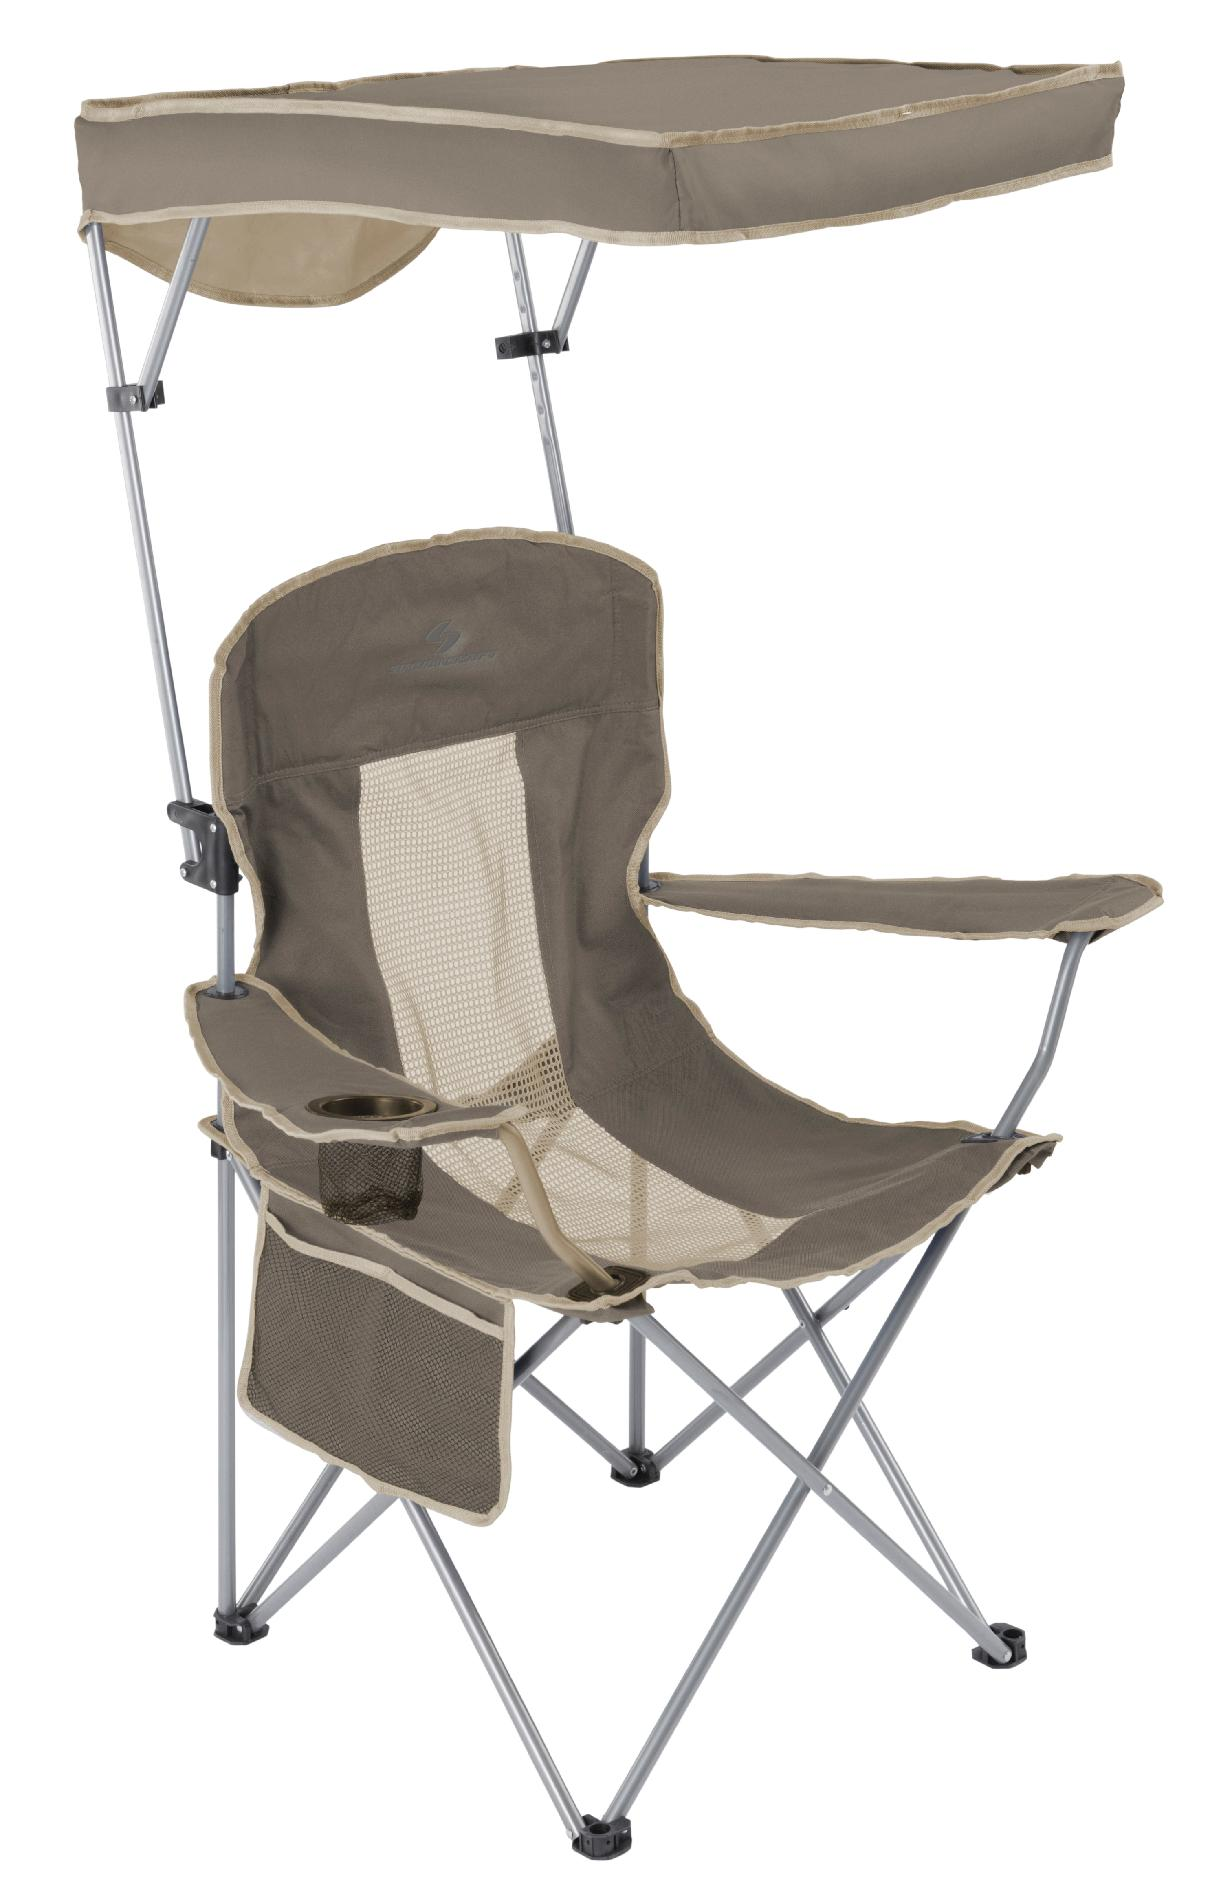 Fold Up Chair With Canopy Sportcraft Canopy Chair